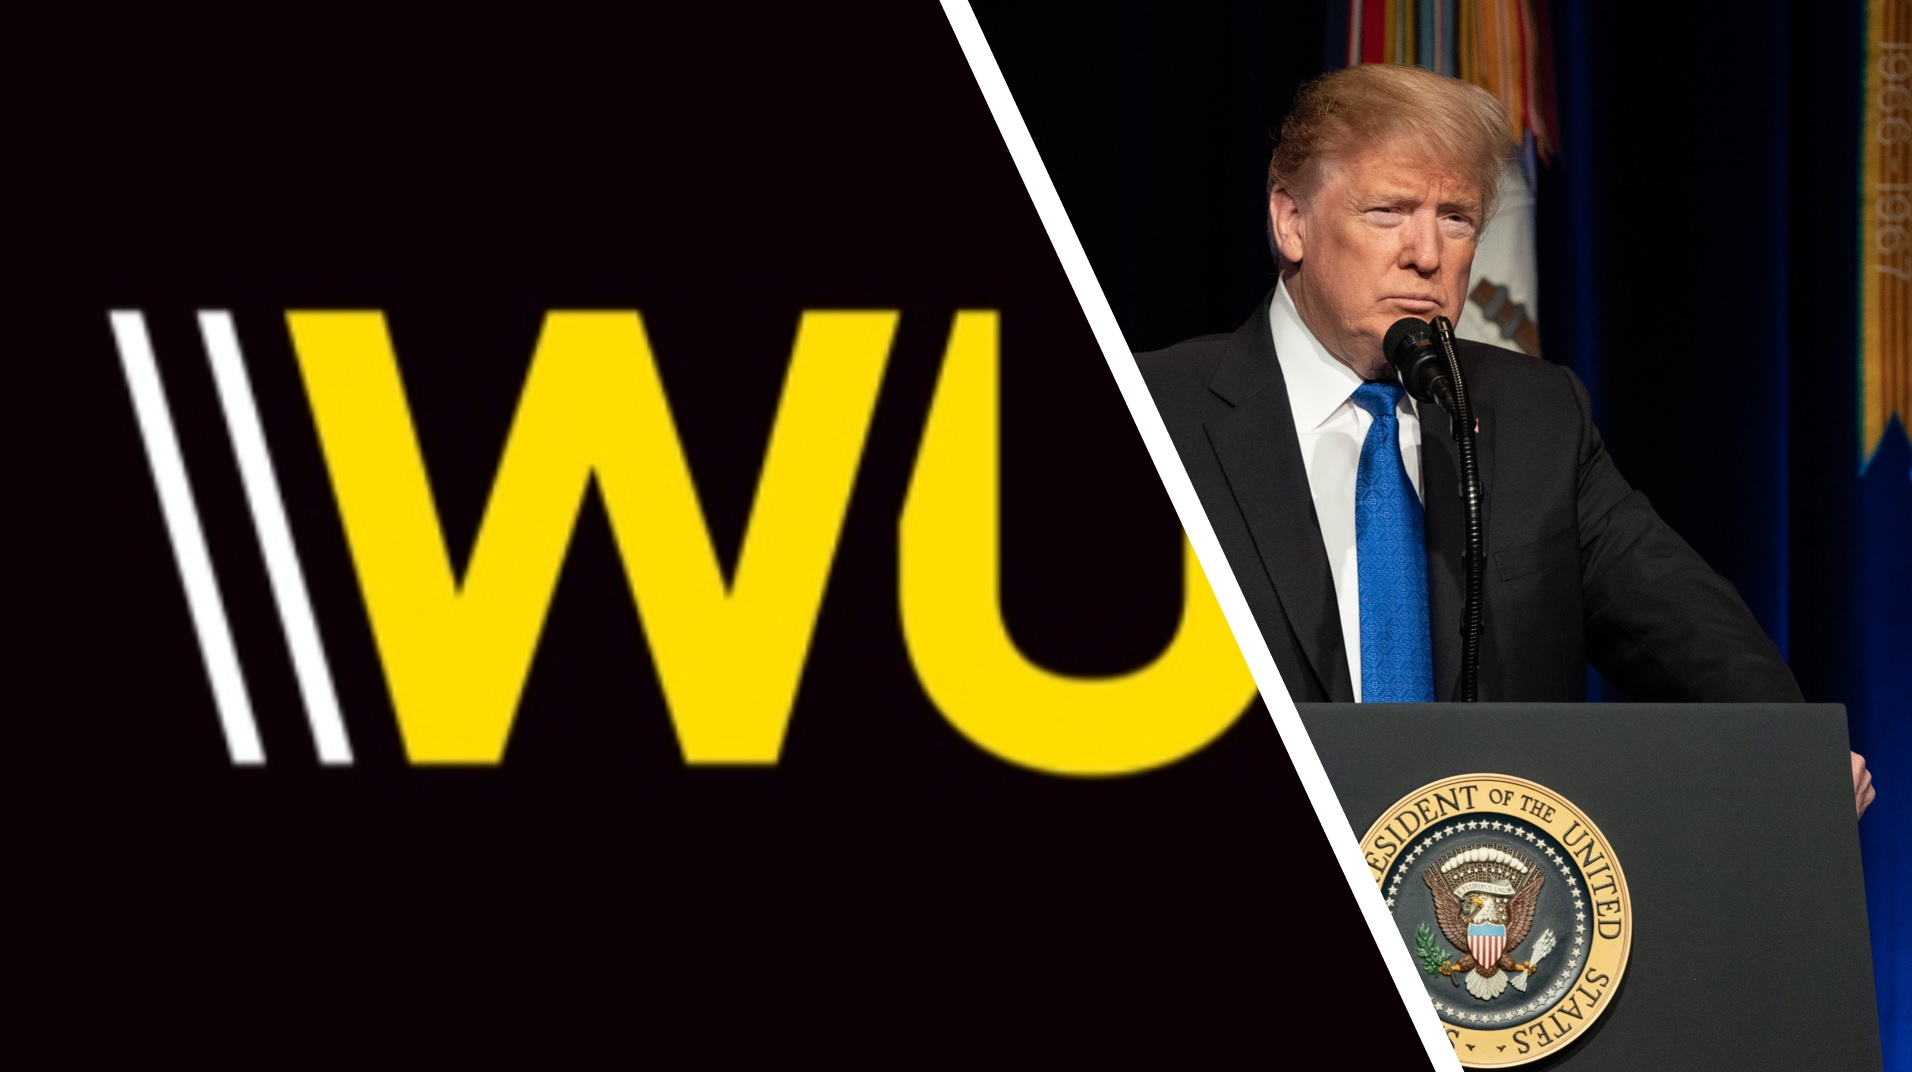 WESTERN UNION is going to halt its US money transfers to Cuba under trump administration